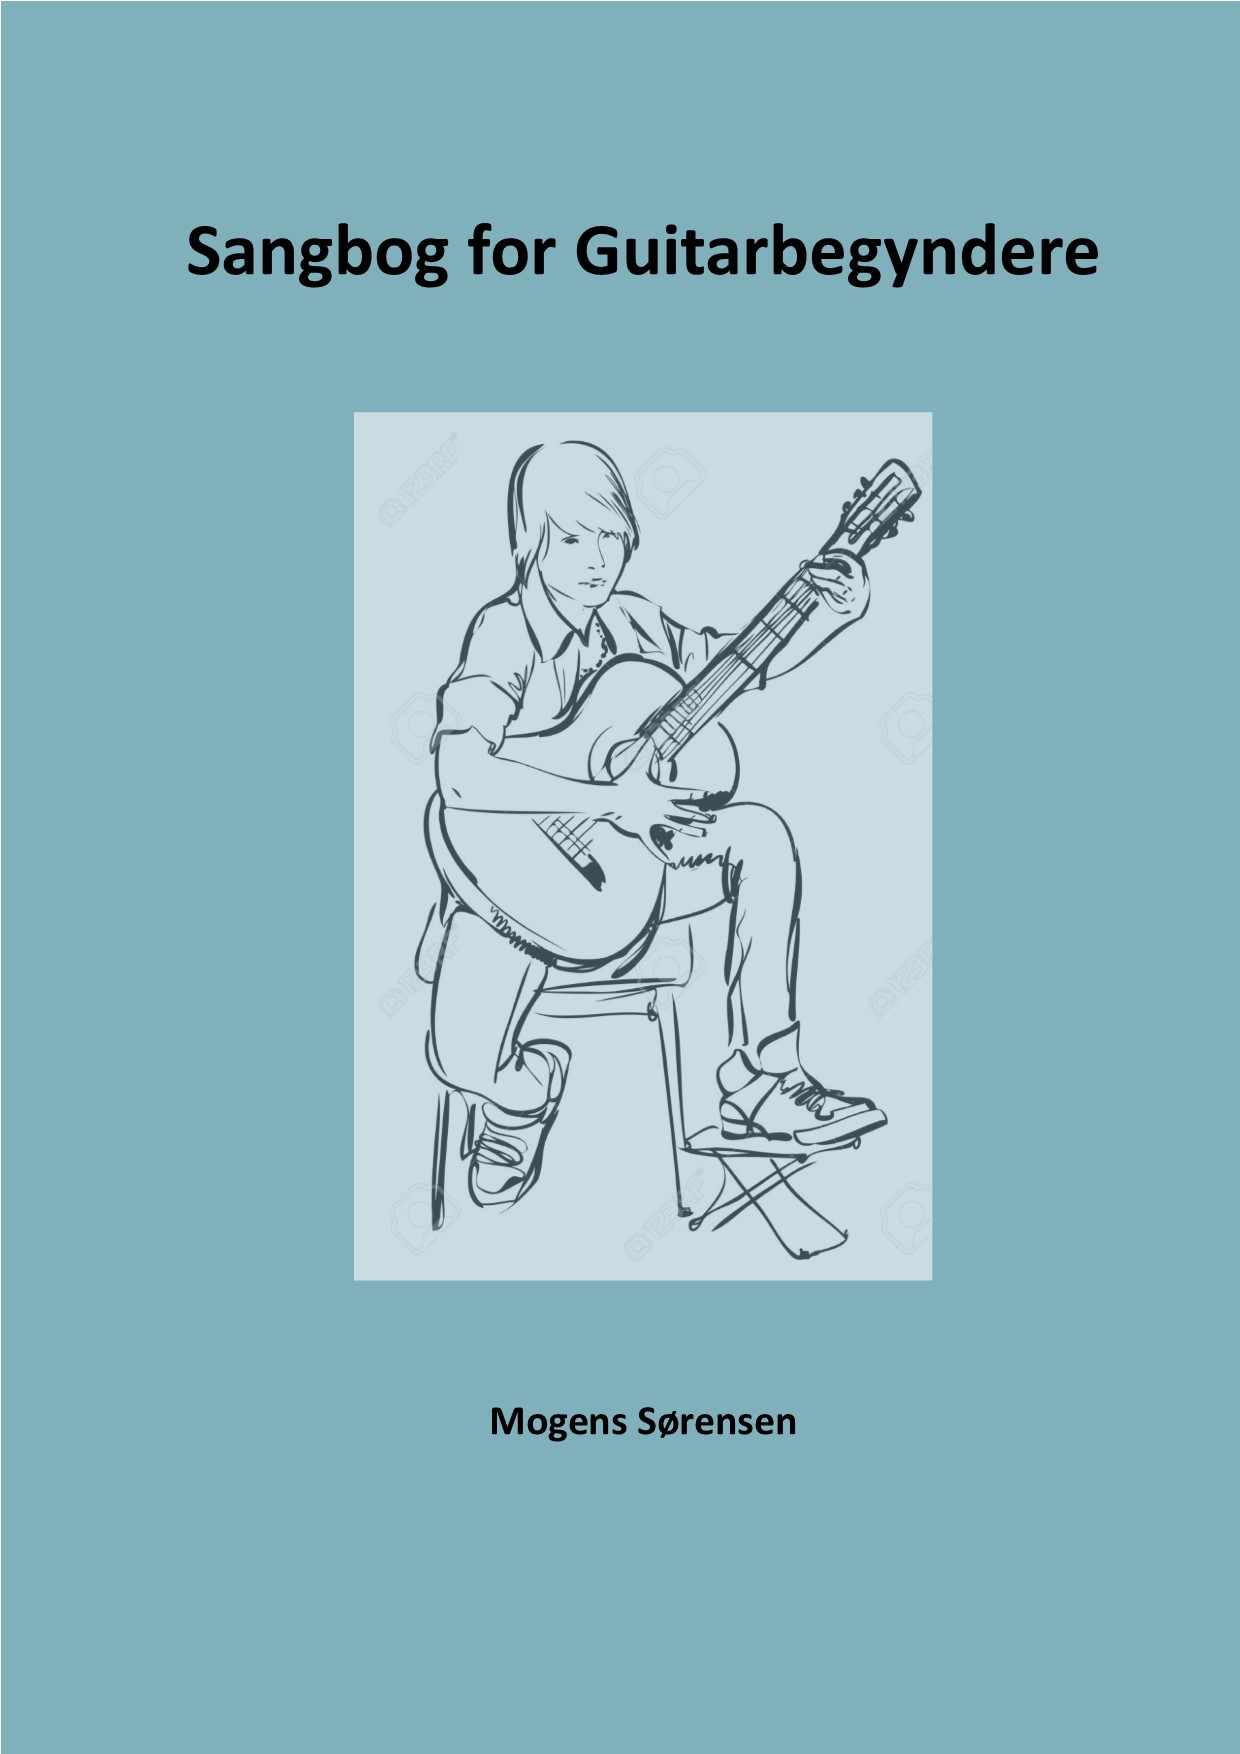 Coverbillede til Sangbog for Guitar-begyndere.